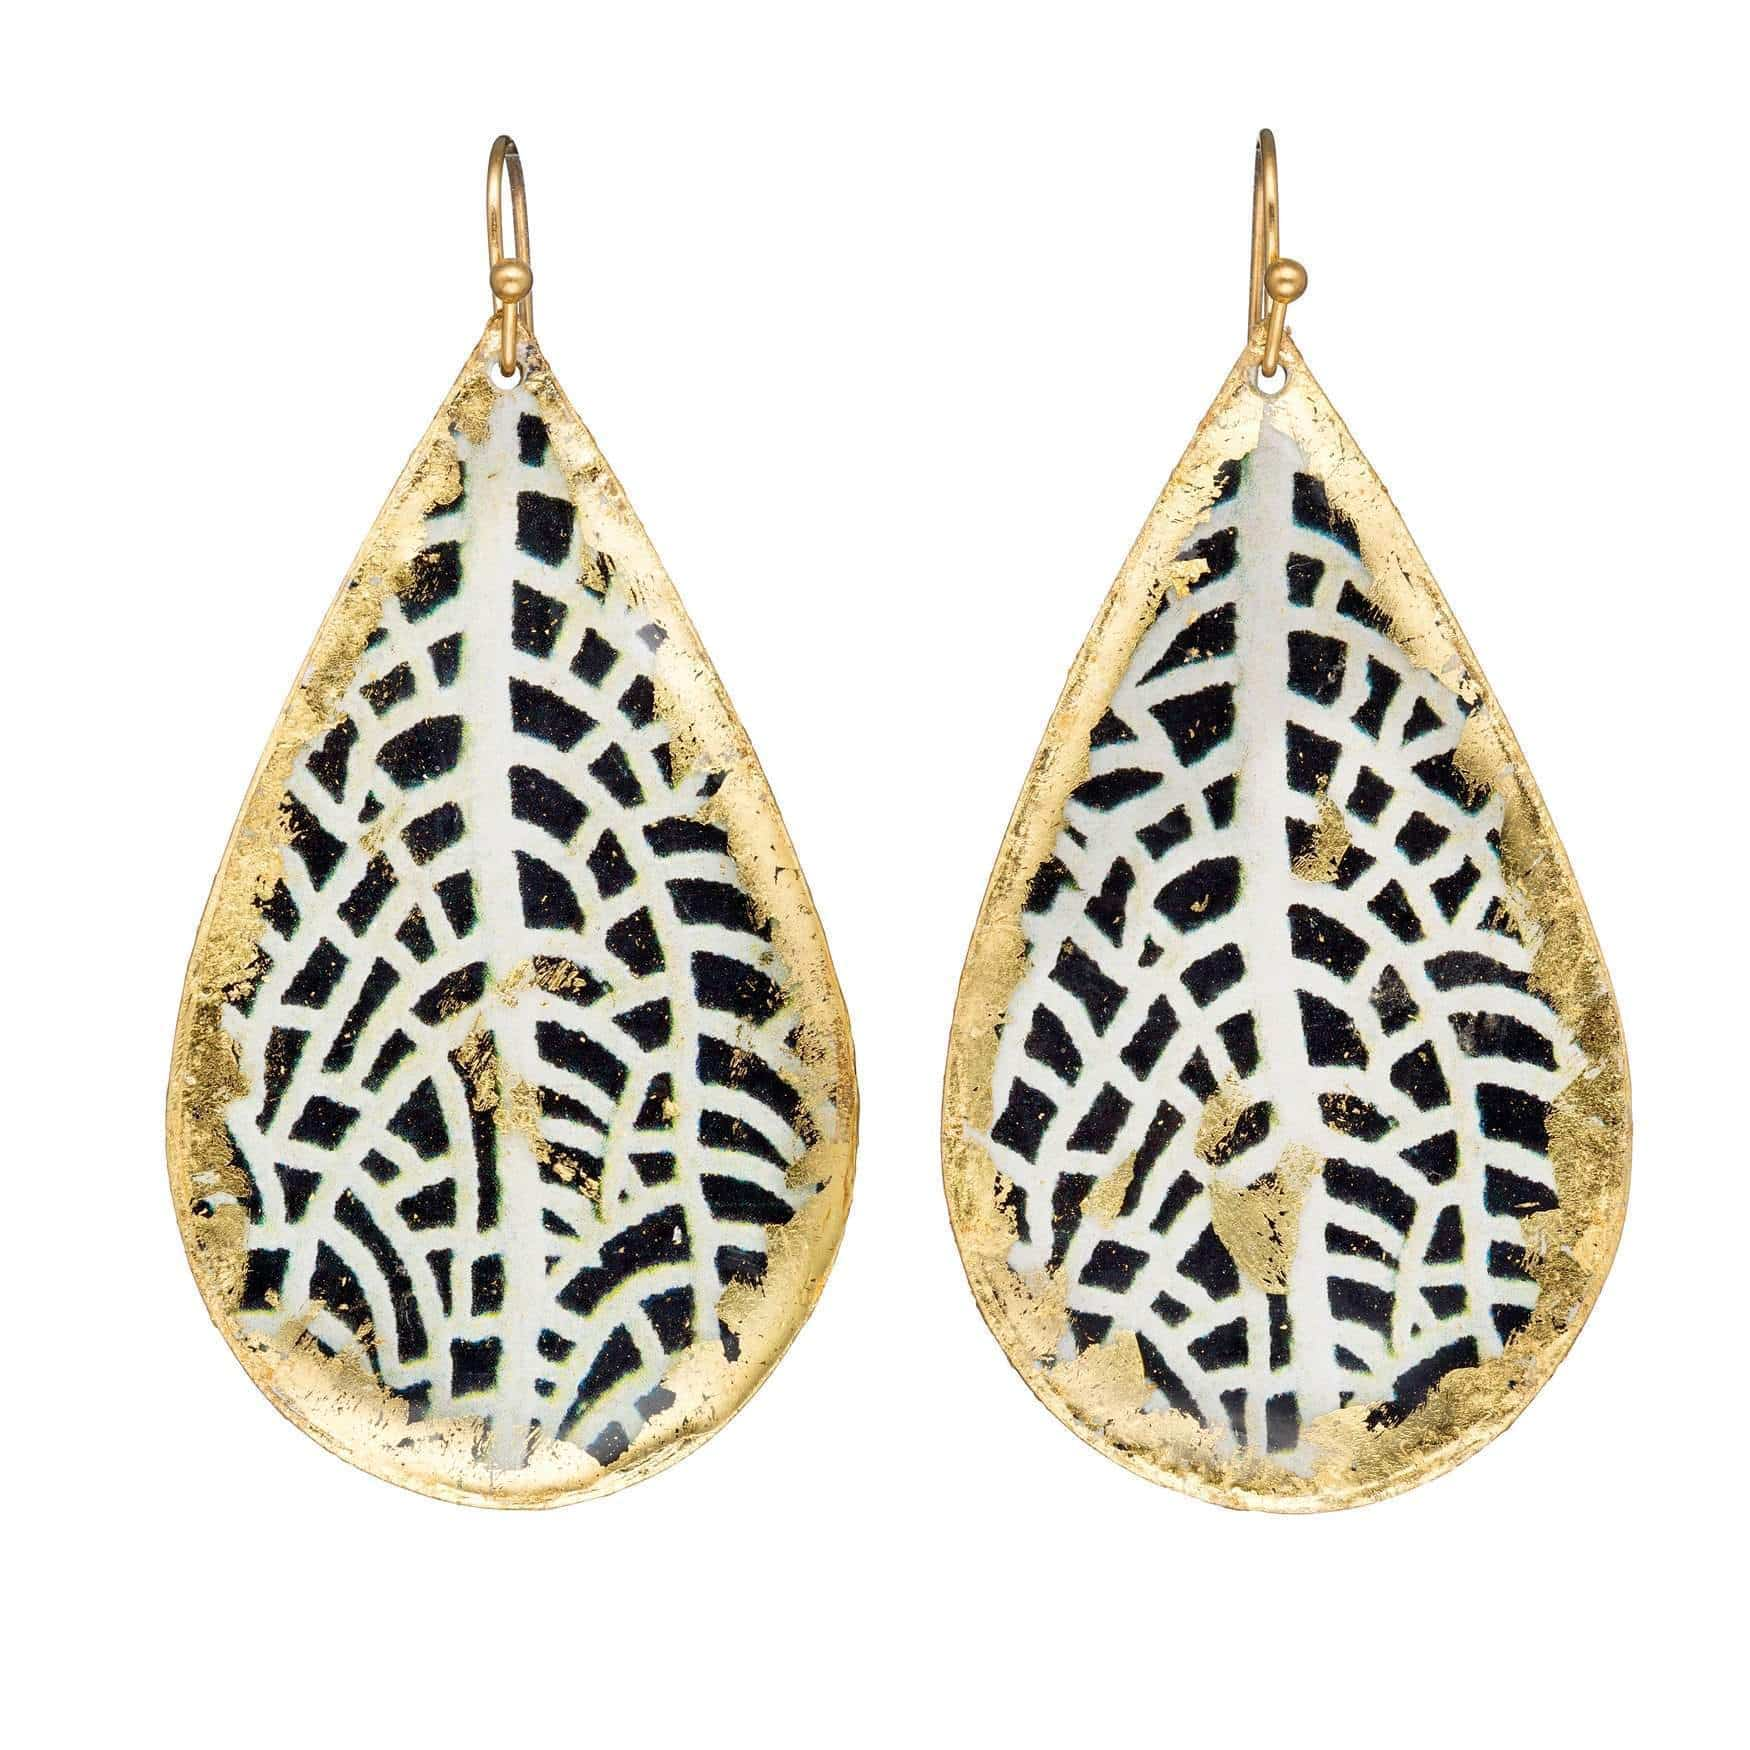 Chantal Gold Teardrops Earrings - BW401-Evocateur-Renee Taylor Gallery